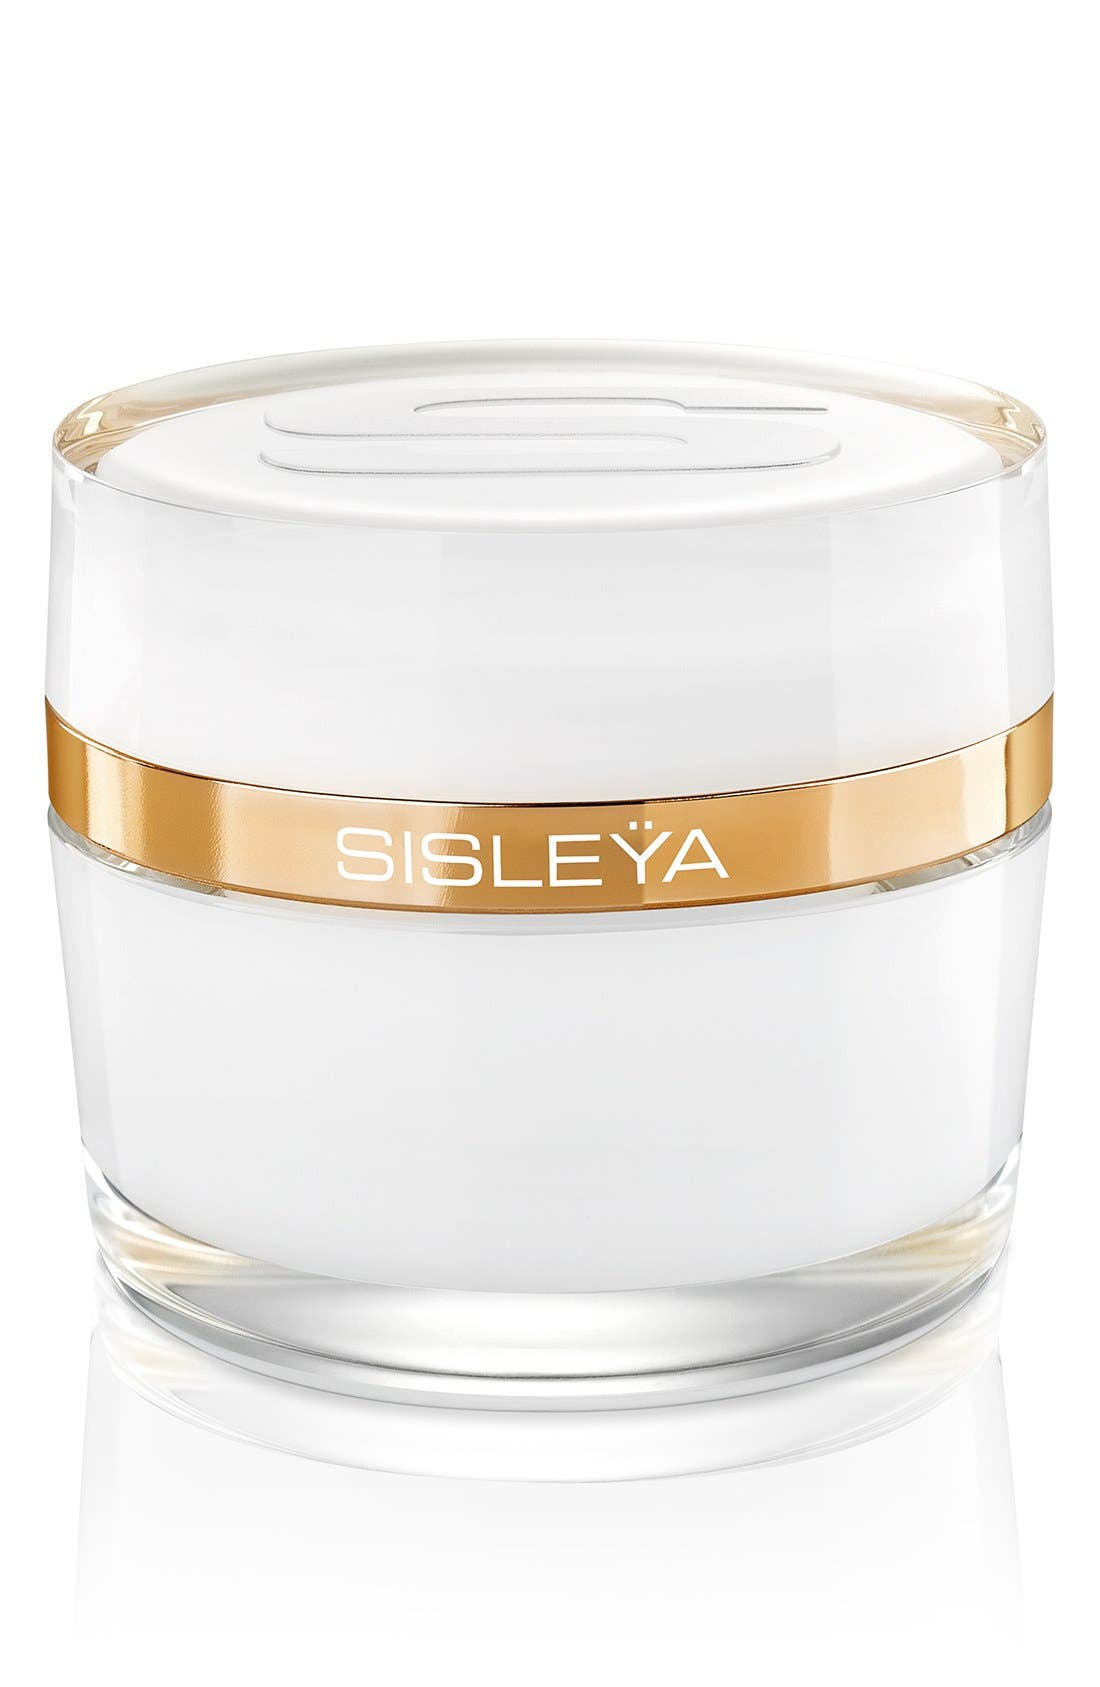 Sisley Paris ' Sisleÿa Global' Anti-Age Extra-Rich